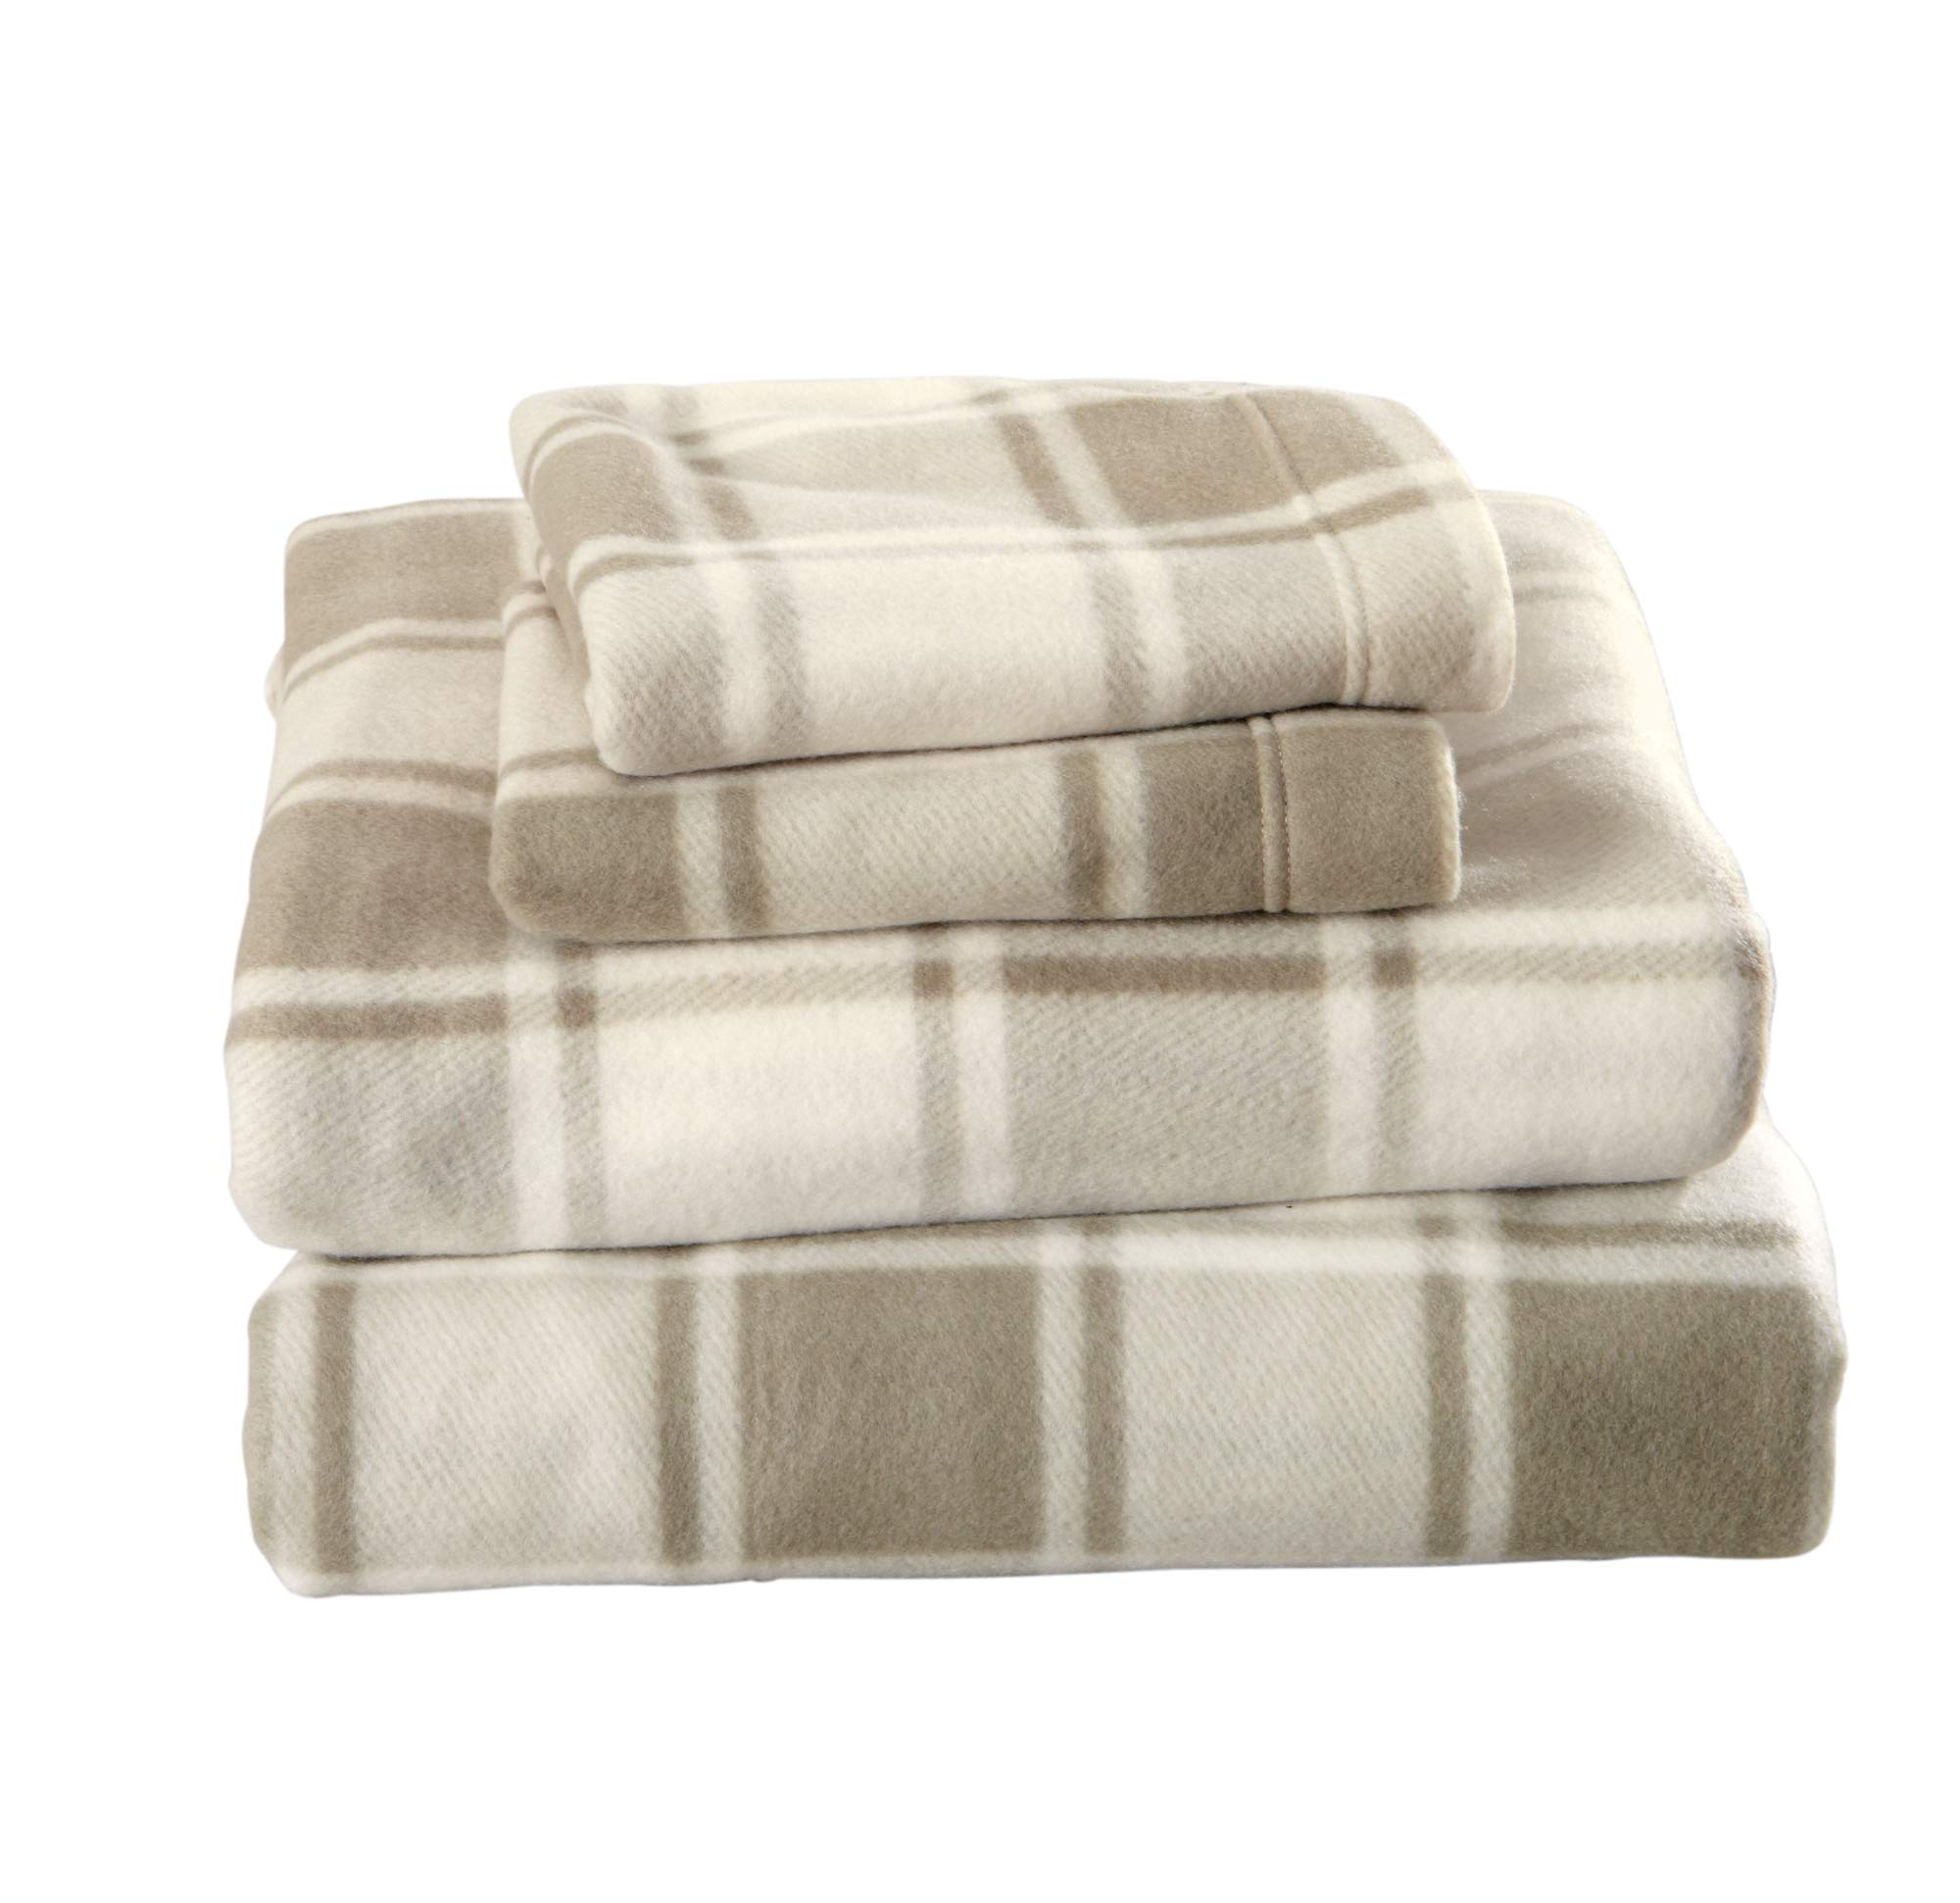 Great Bay Home Super Soft Extra Plush Plaid Polar Fleece Sheet Set. Cozy, Warm, Durable, Smooth, Breathable Winter Sheets with Plaid Pattern. Dara Collection Brand. (Full, Taupe) by Great Bay Home (Image #3)